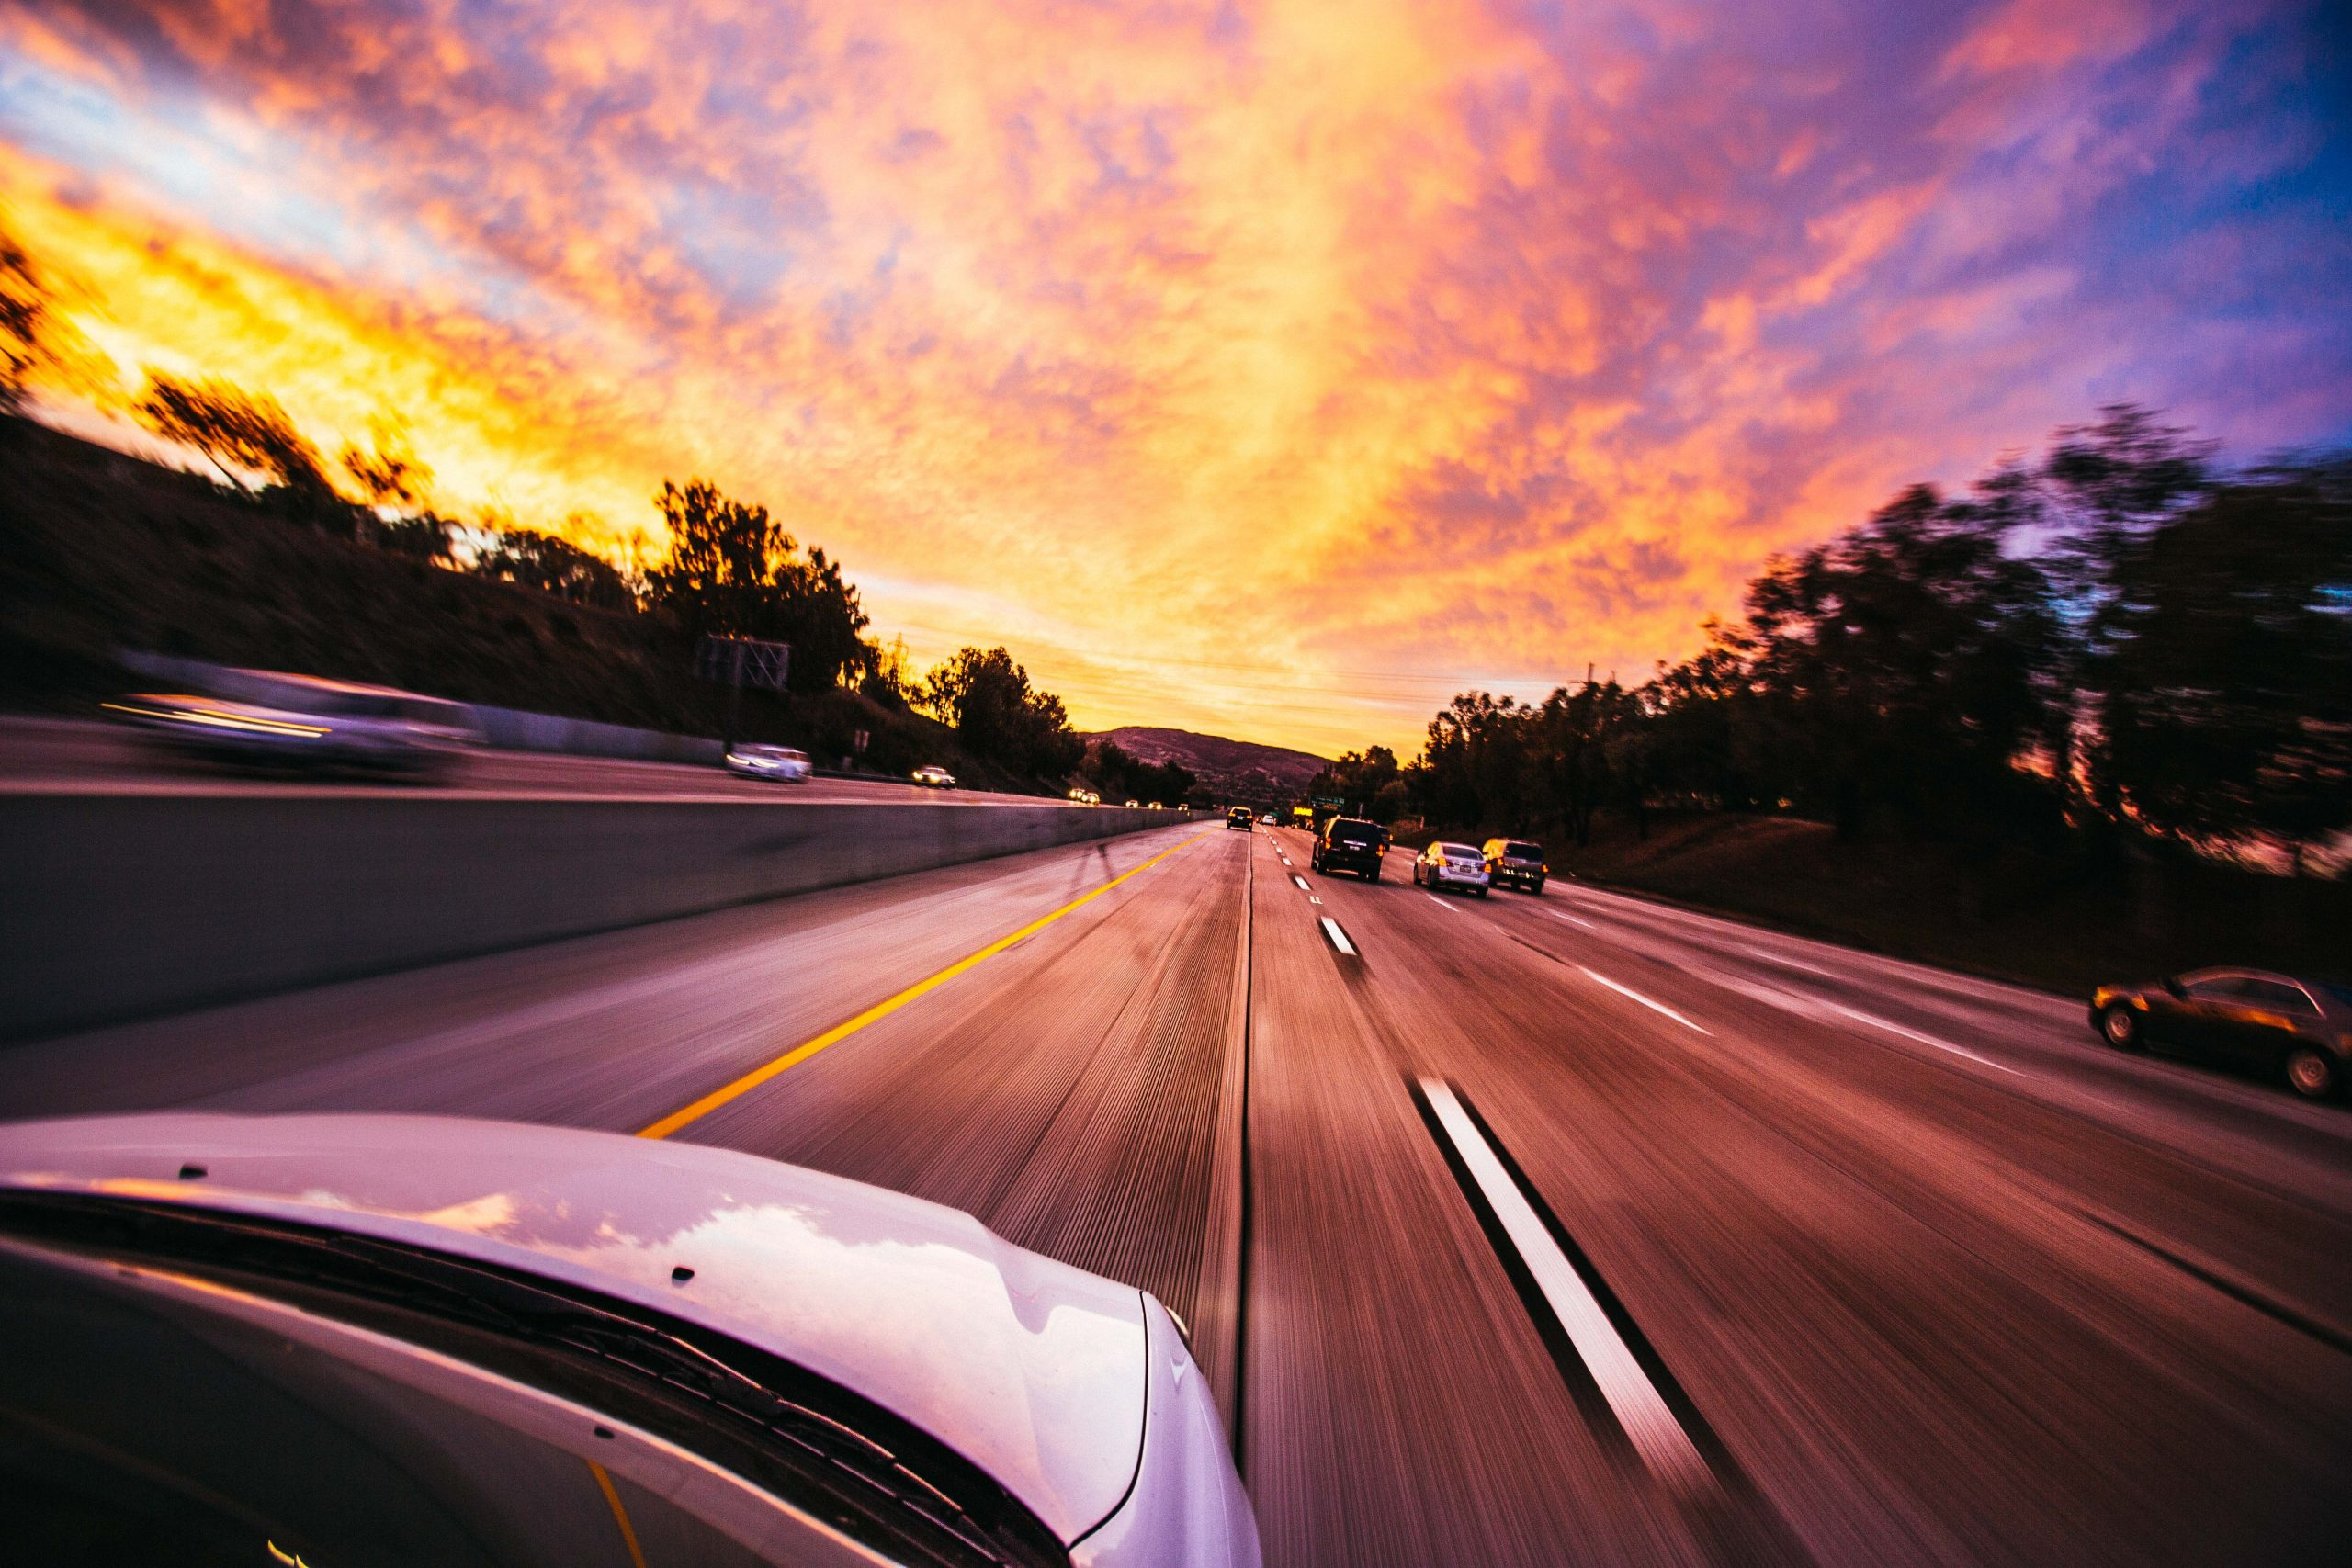 Vehicle defects covered under the Texas Lemon Law